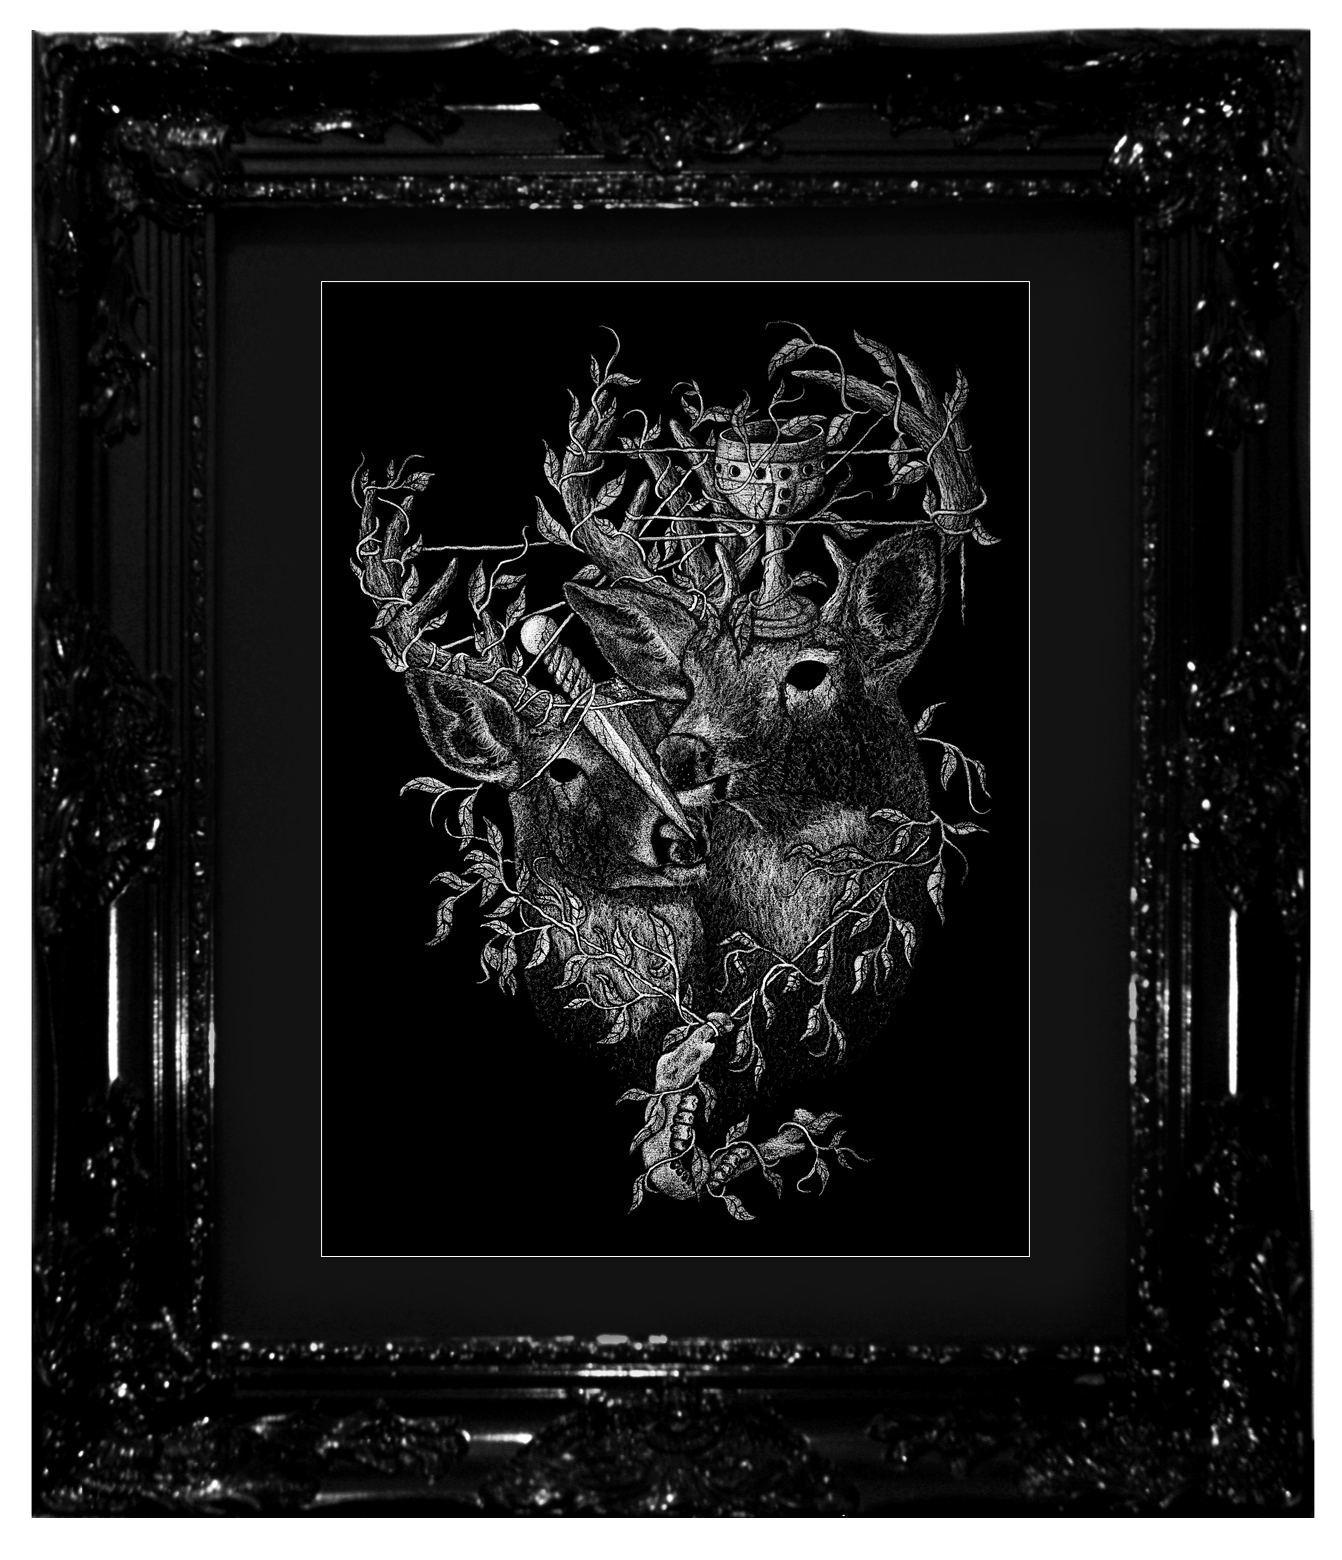 """A New Seed is Sown"", 2017 Ashes, chalk-lead and ink on black cotton-rag paper 16x20"", 18x24"" framed Contact Last Rites Gallery for purchasing information"